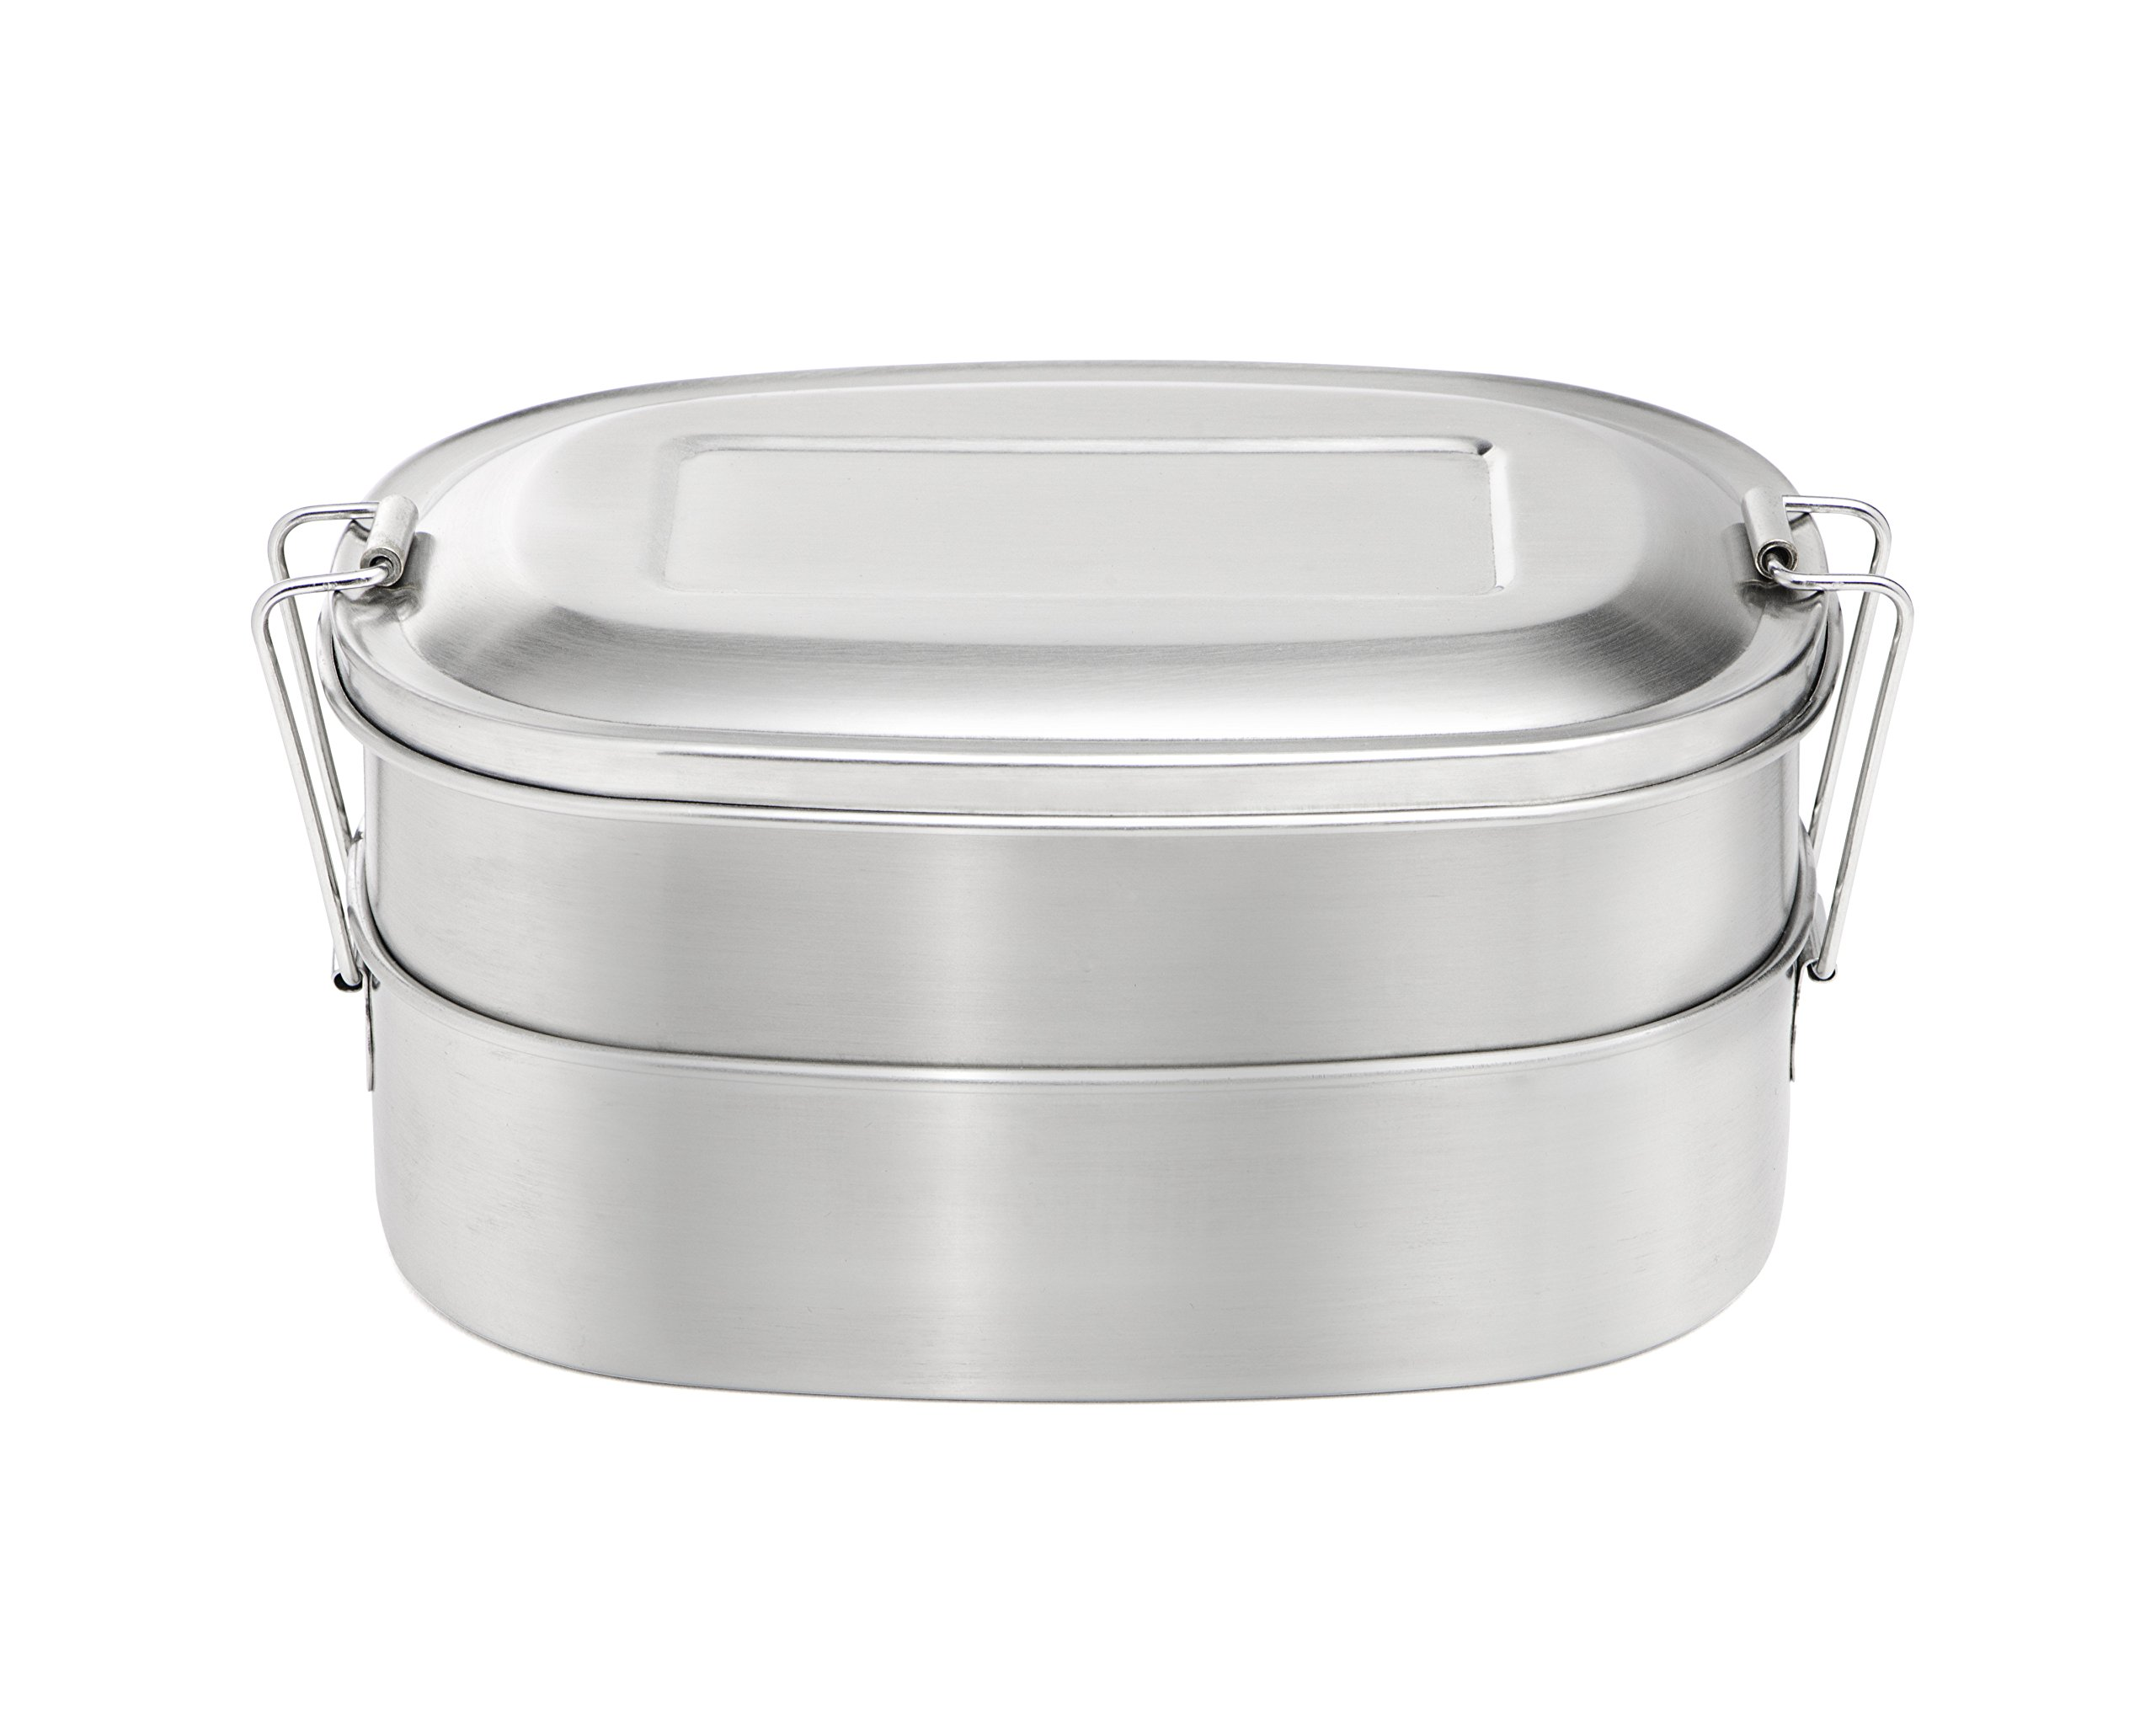 +Steel Double Lunch Box 32oz, 18/8 Stainless Steel Kids Lunch Box & Bento Food Container